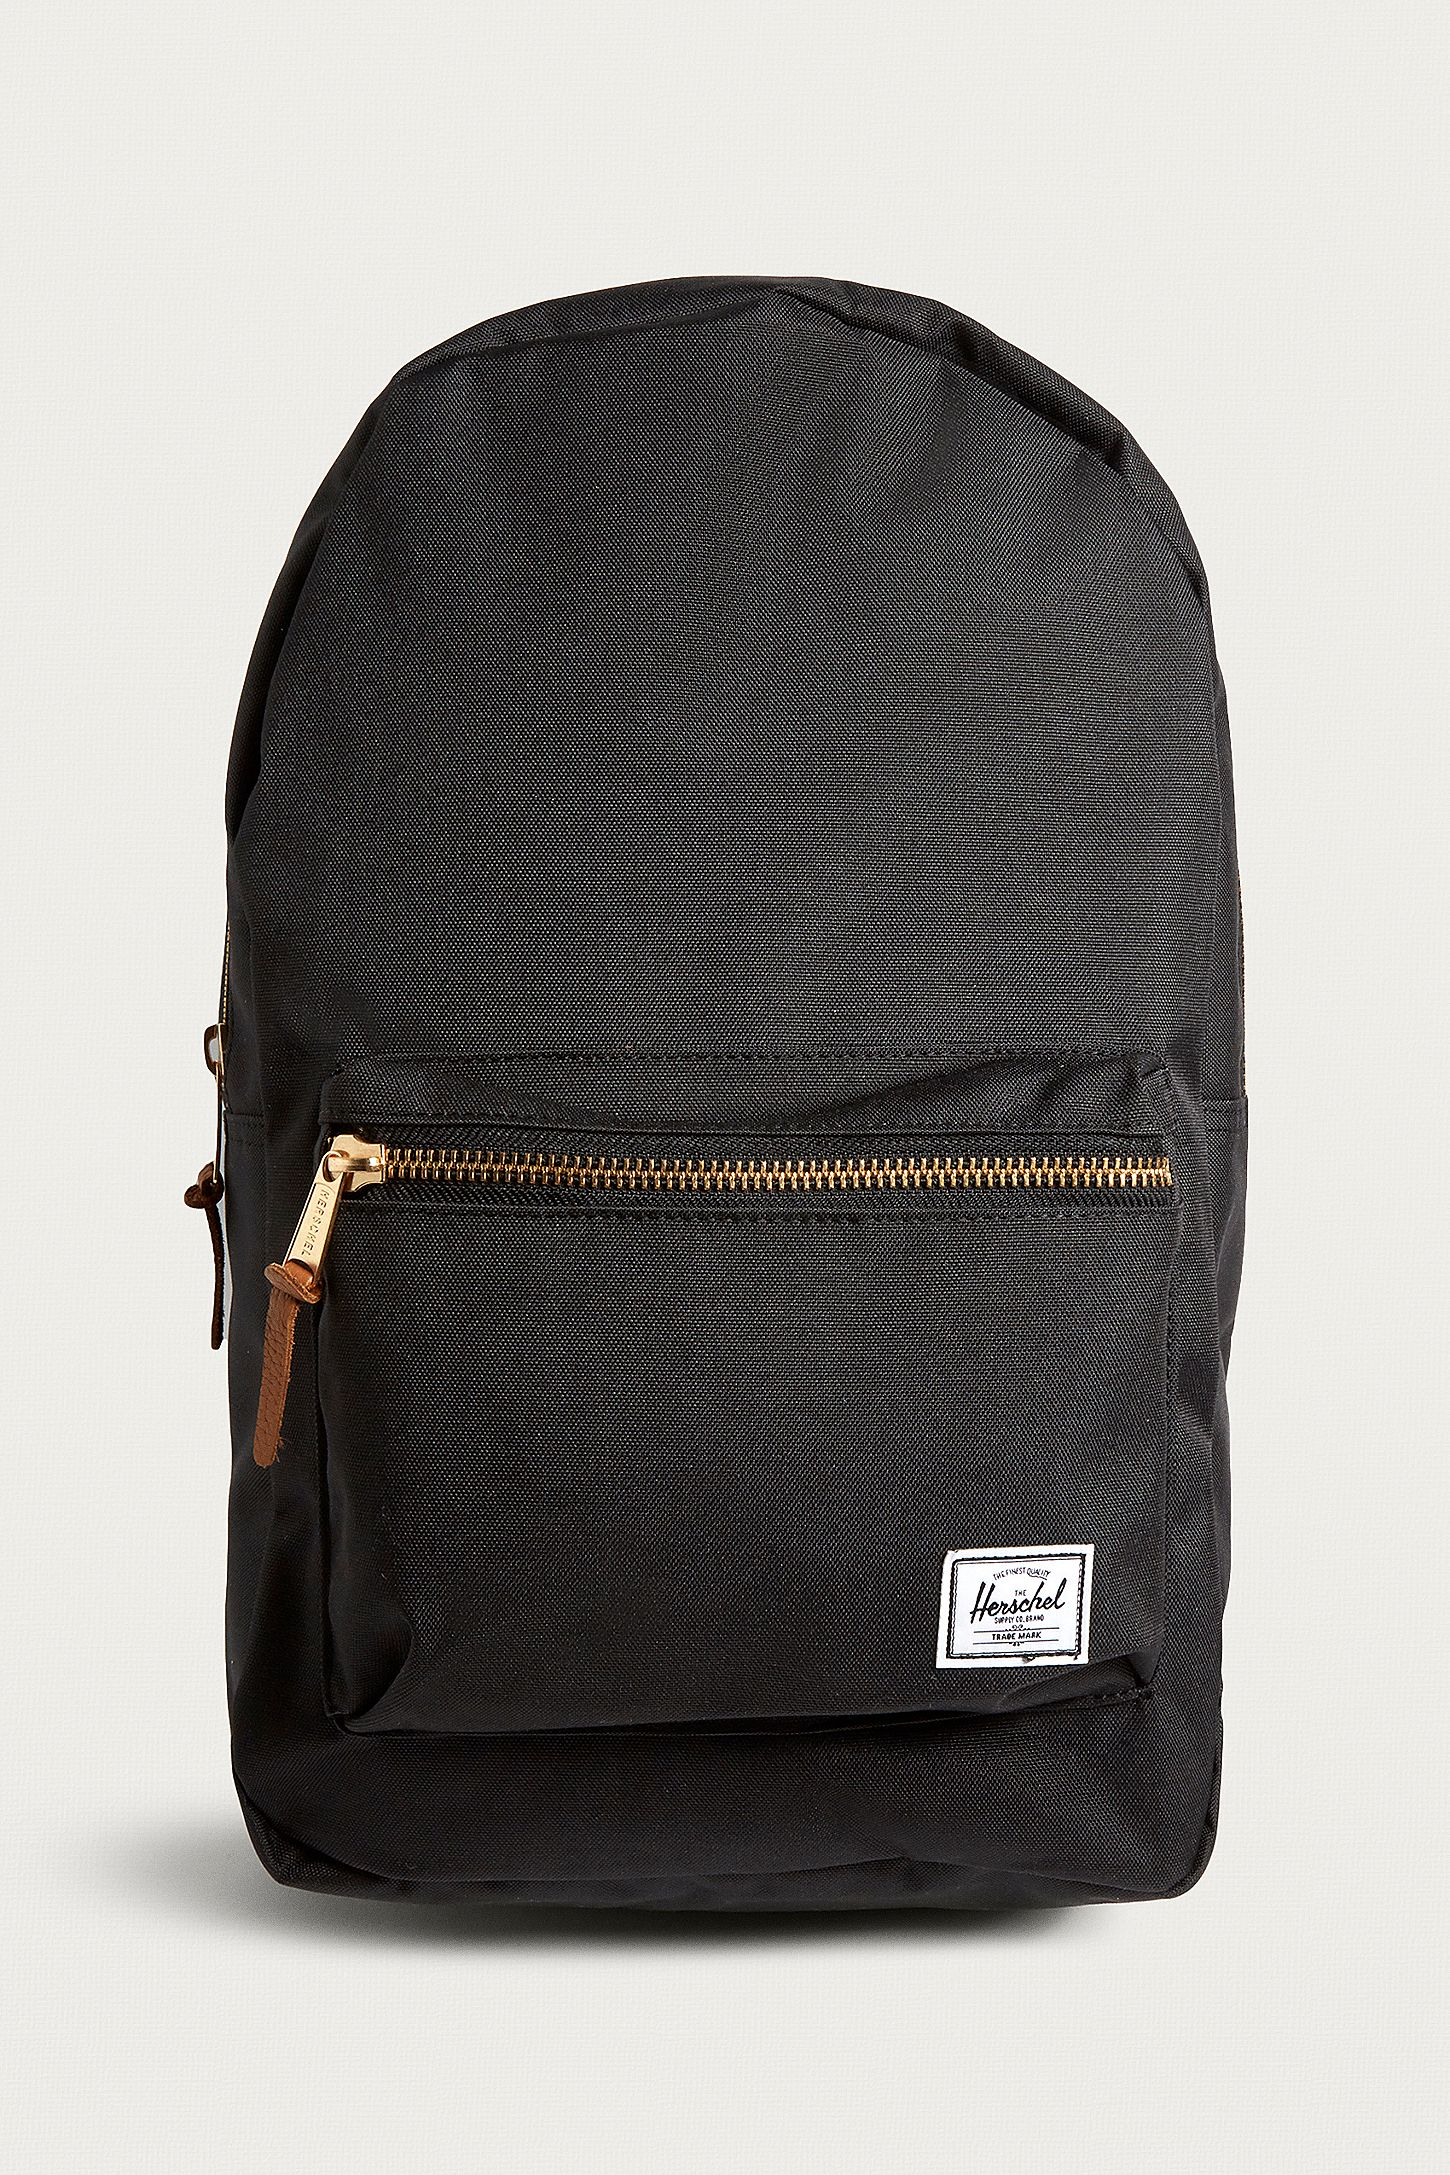 Herschel Supply Co. Settlement Black Backpack   Urban Outfitters UK 9026777237